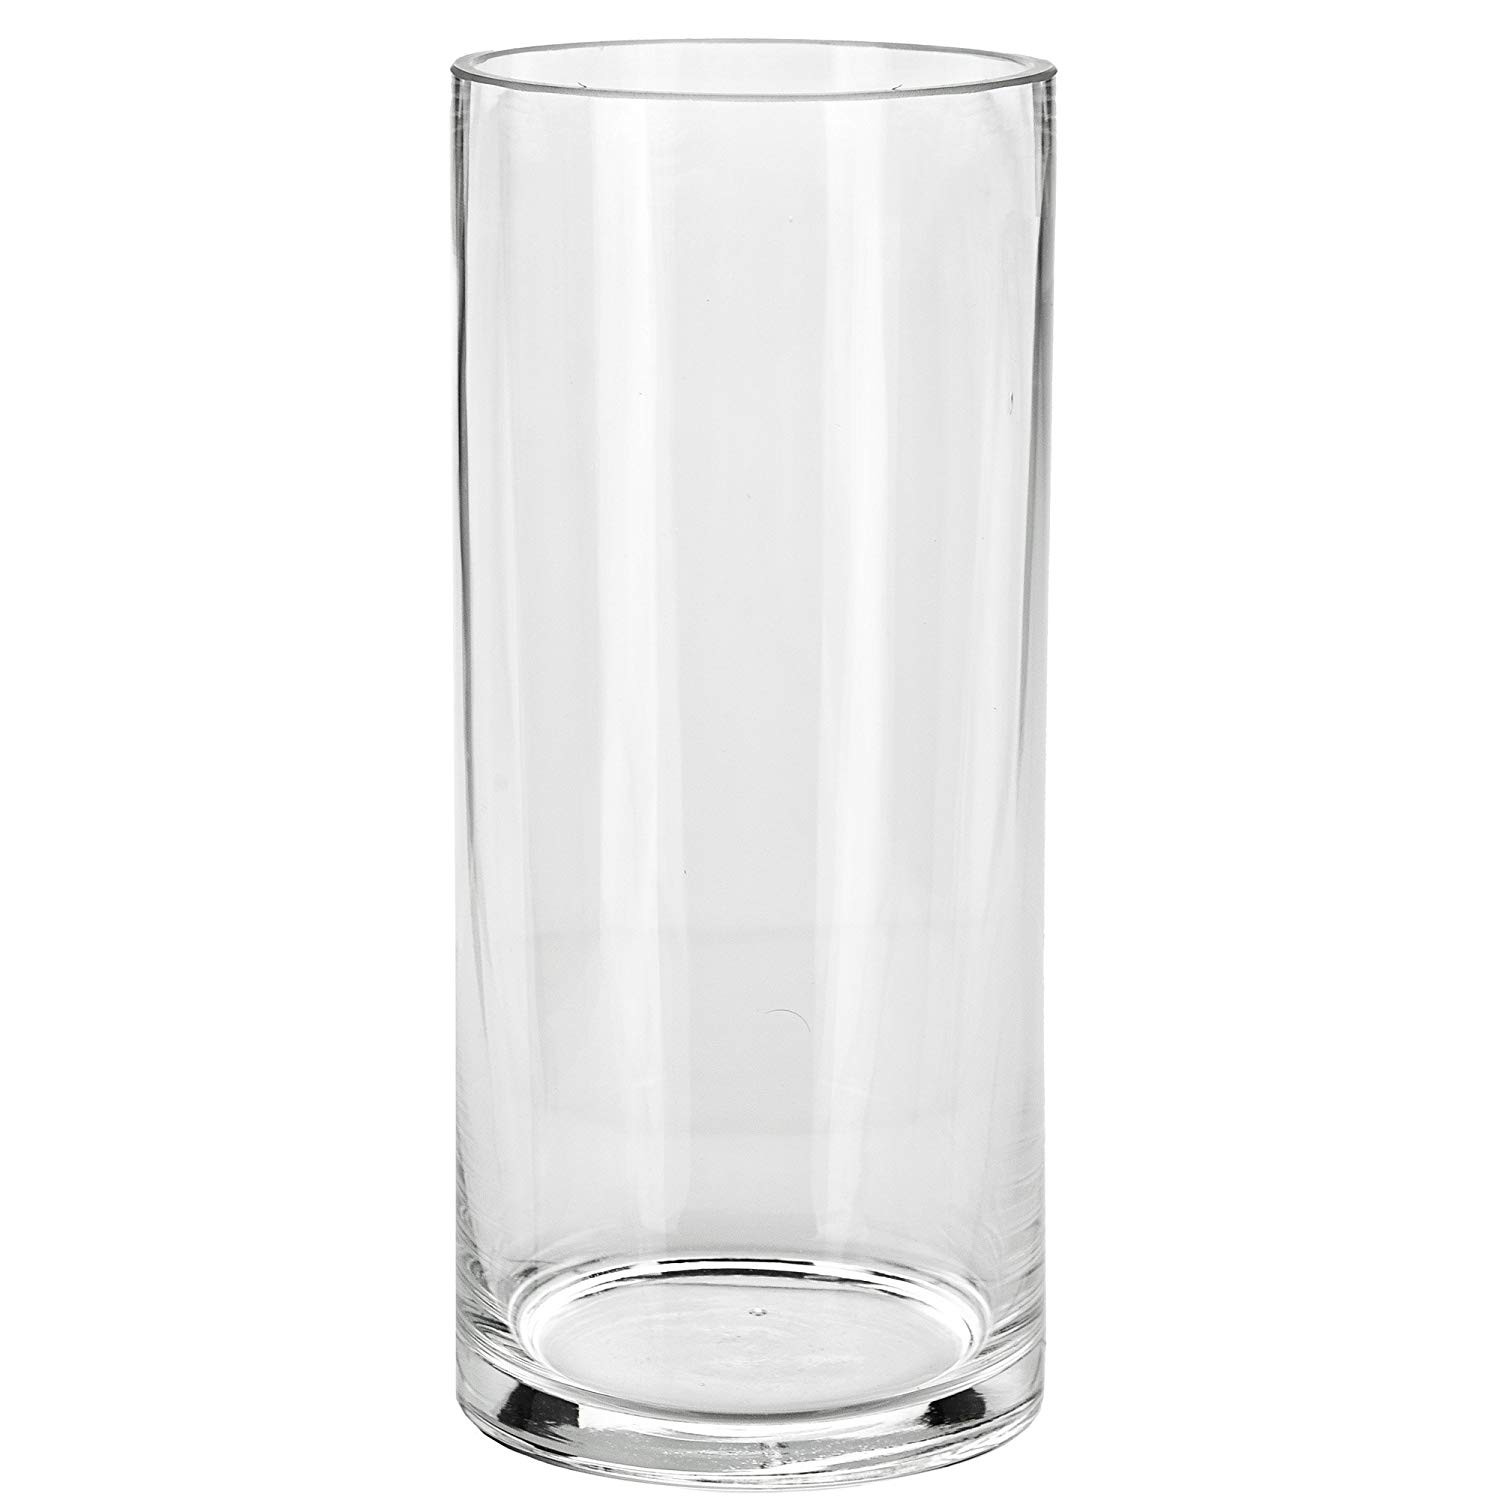 5 Inch Tall Cylinder Glass Vases Of Amazon Com Couronne Company 7250 Large Cylinder Glass Vase 67 6 Oz with Regard to Amazon Com Couronne Company 7250 Large Cylinder Glass Vase 67 6 Oz Capacity Home Kitchen